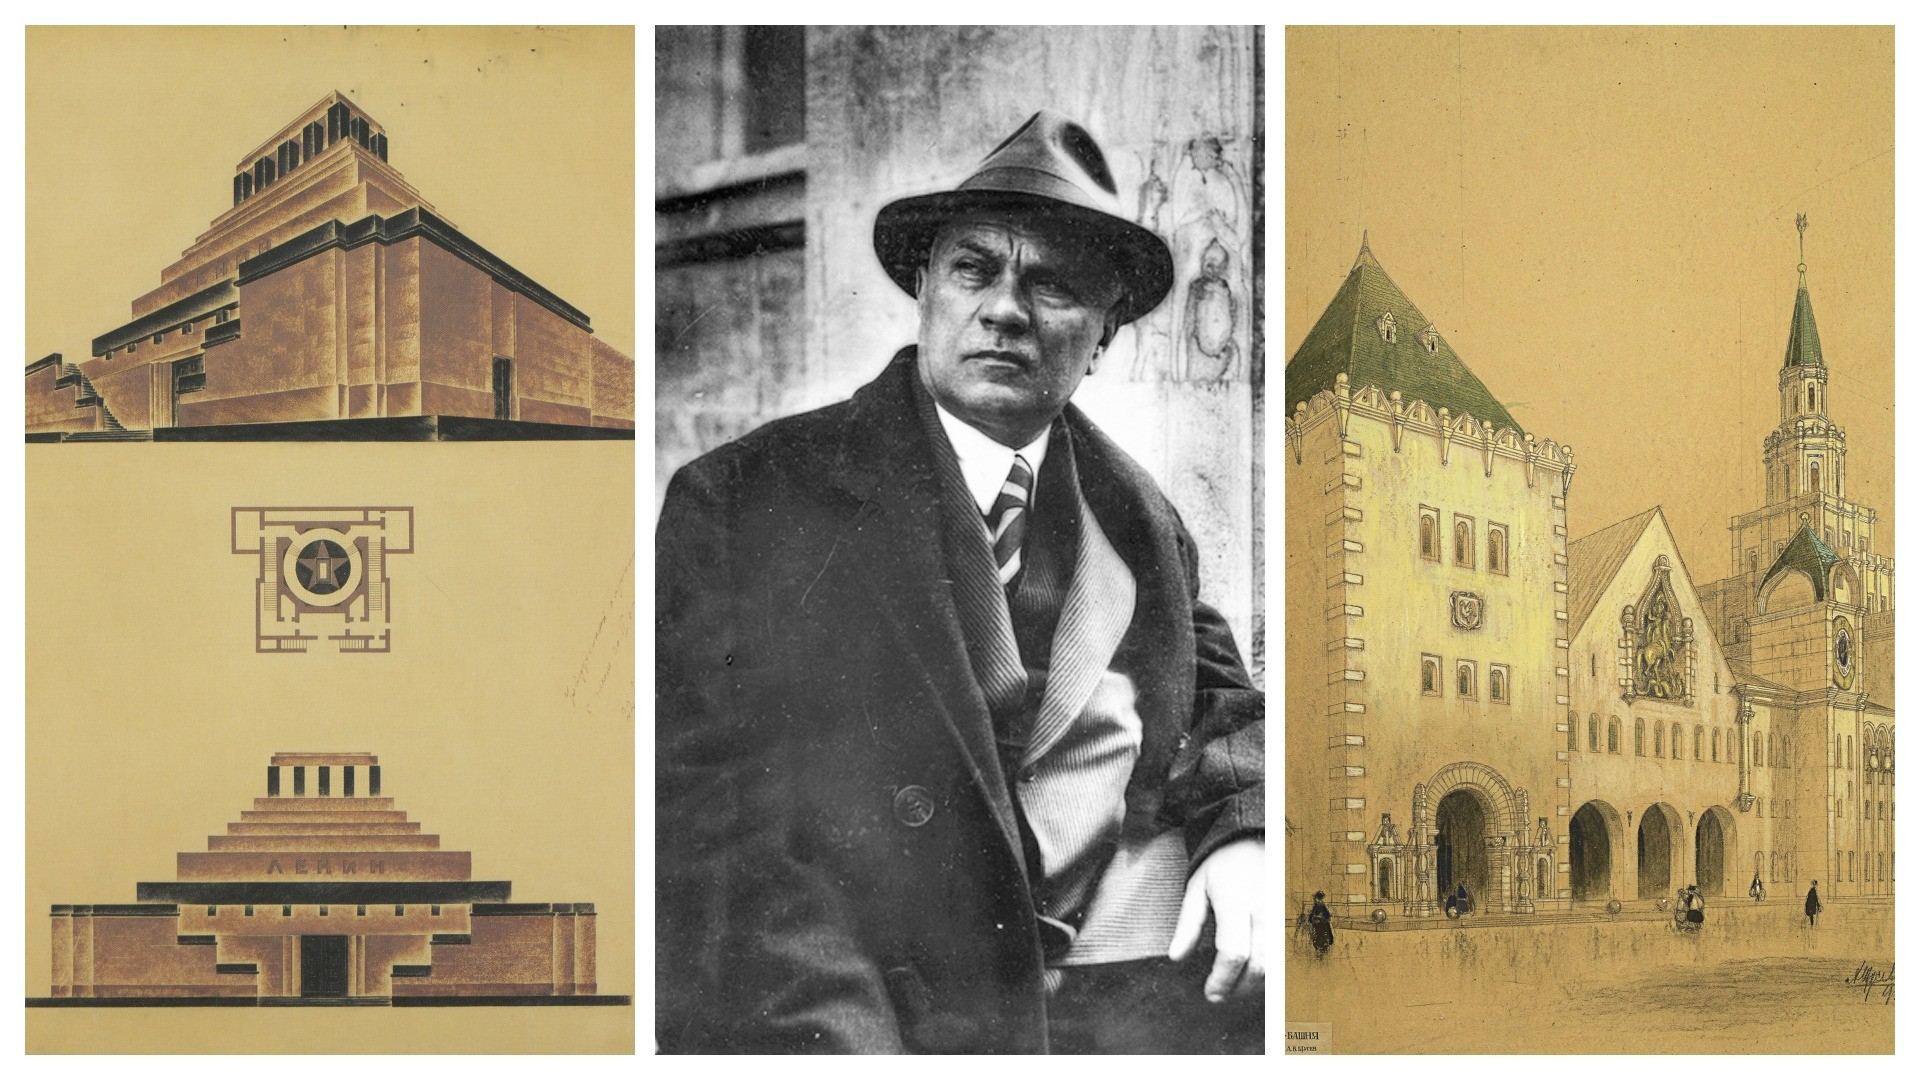 Alexey Shchusev and his famous creations: Lenin's Mausoleum and Kazansky Railway Station in Moscow.